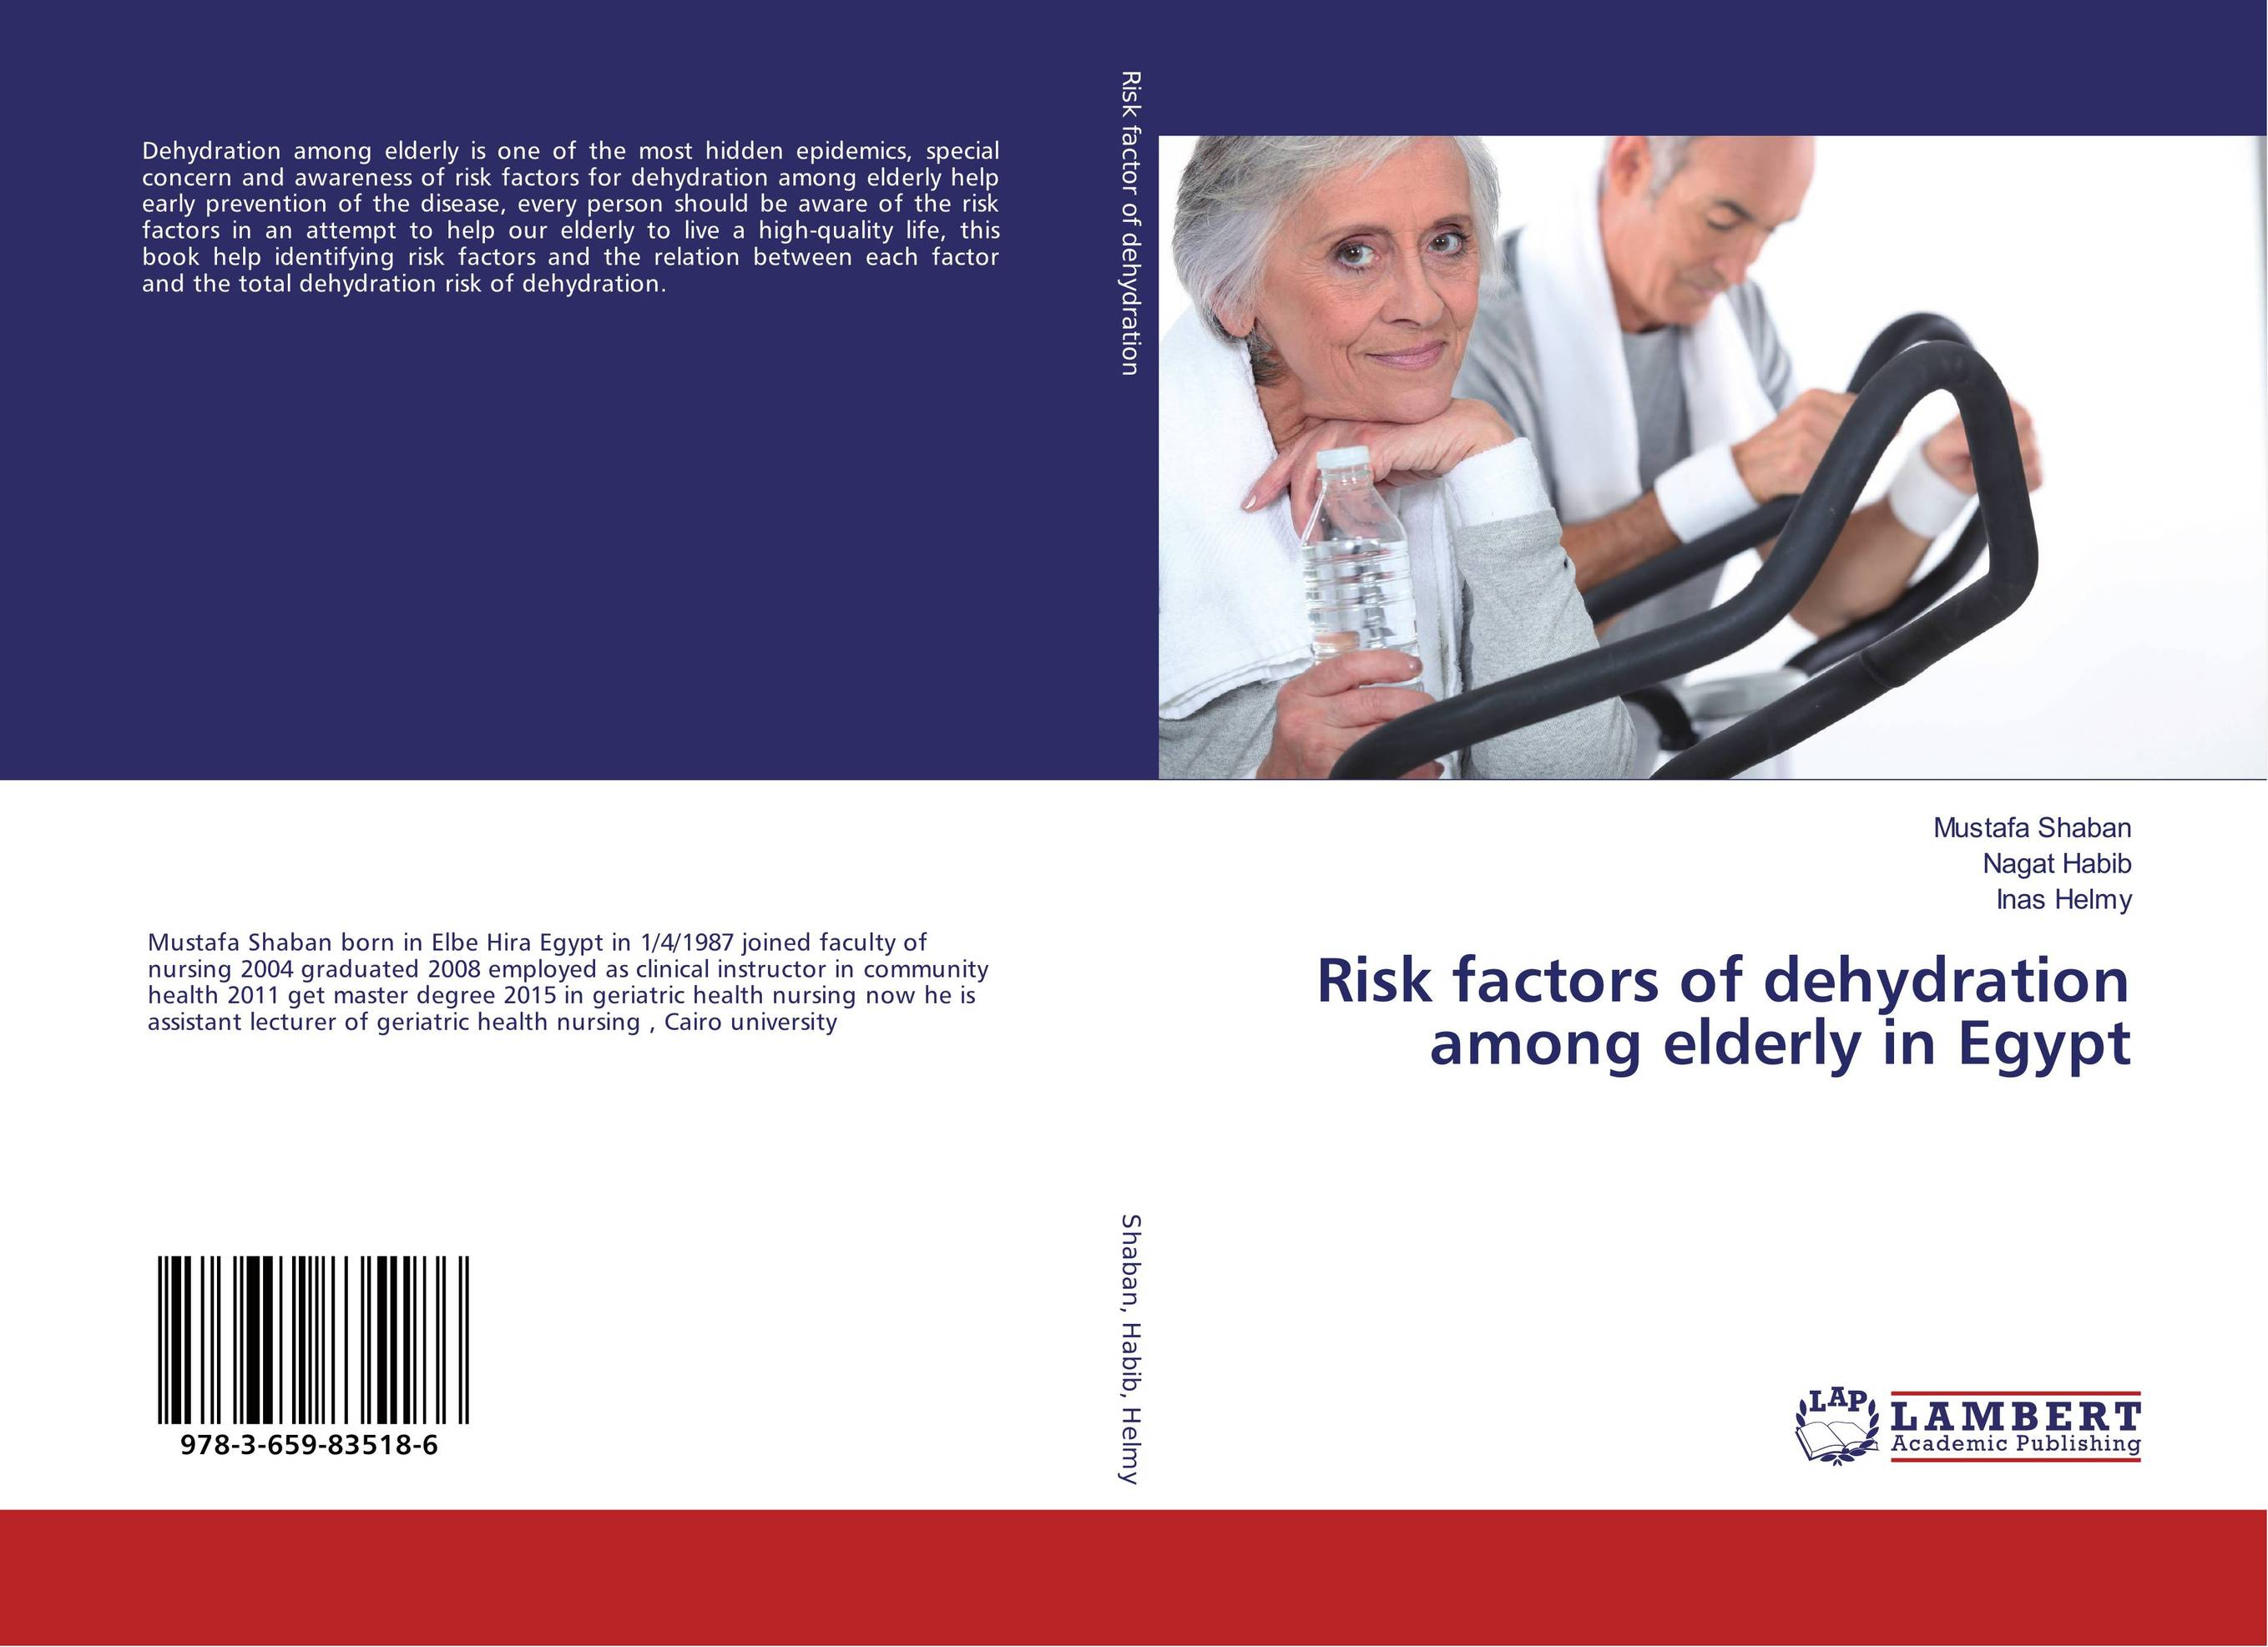 Risk factors of dehydration among elderly in Egypt srichander ramaswamy managing credit risk in corporate bond portfolios a practitioner s guide